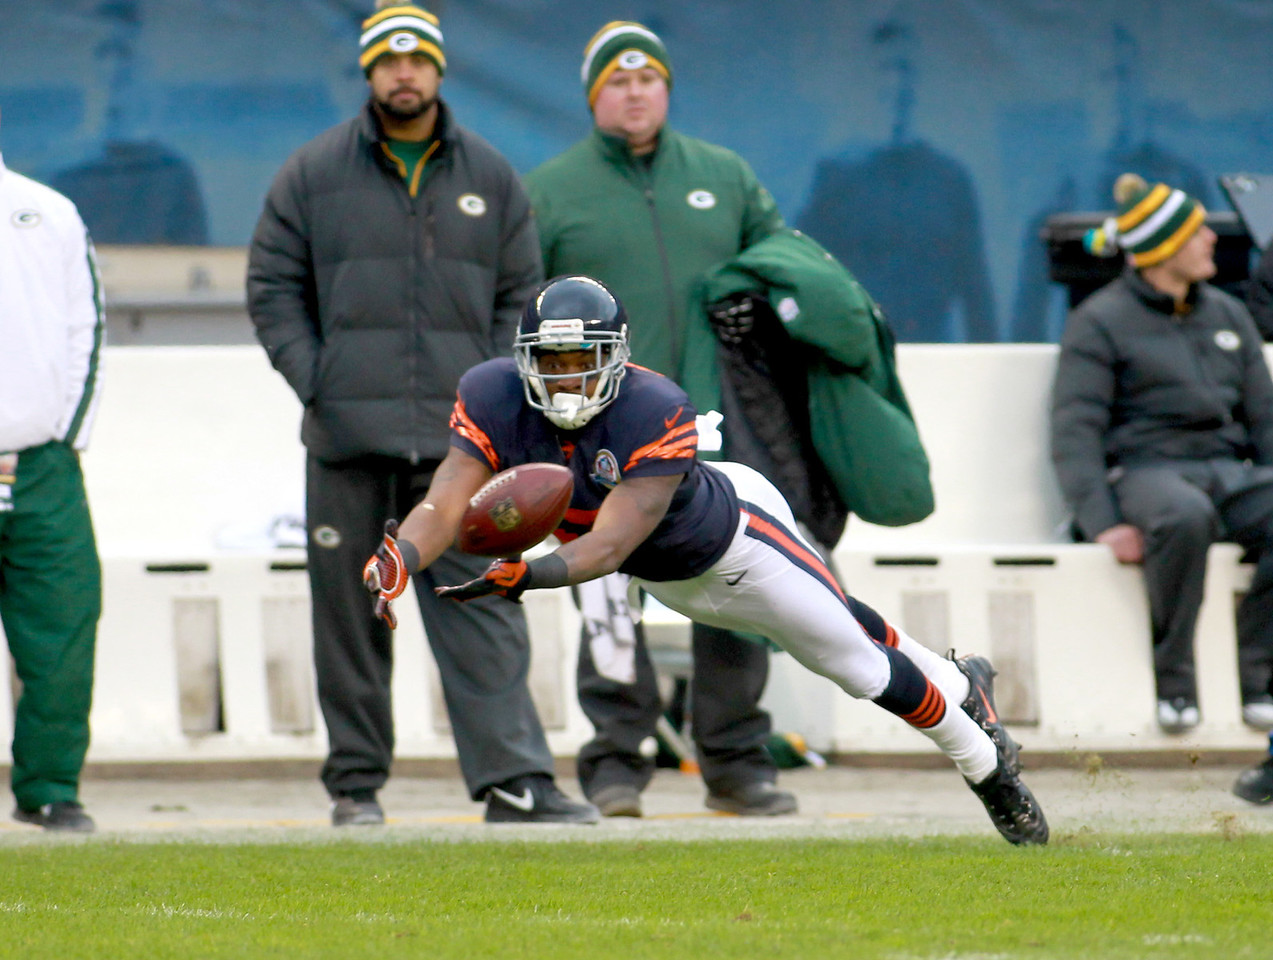 Chicago Bears wide receiver Alshon Jeffery is unable to complete a pass in the second half of their 21-13 loss to the Green Bay Packers at Soldier Field Sunday.(Sandy Bressner photo)